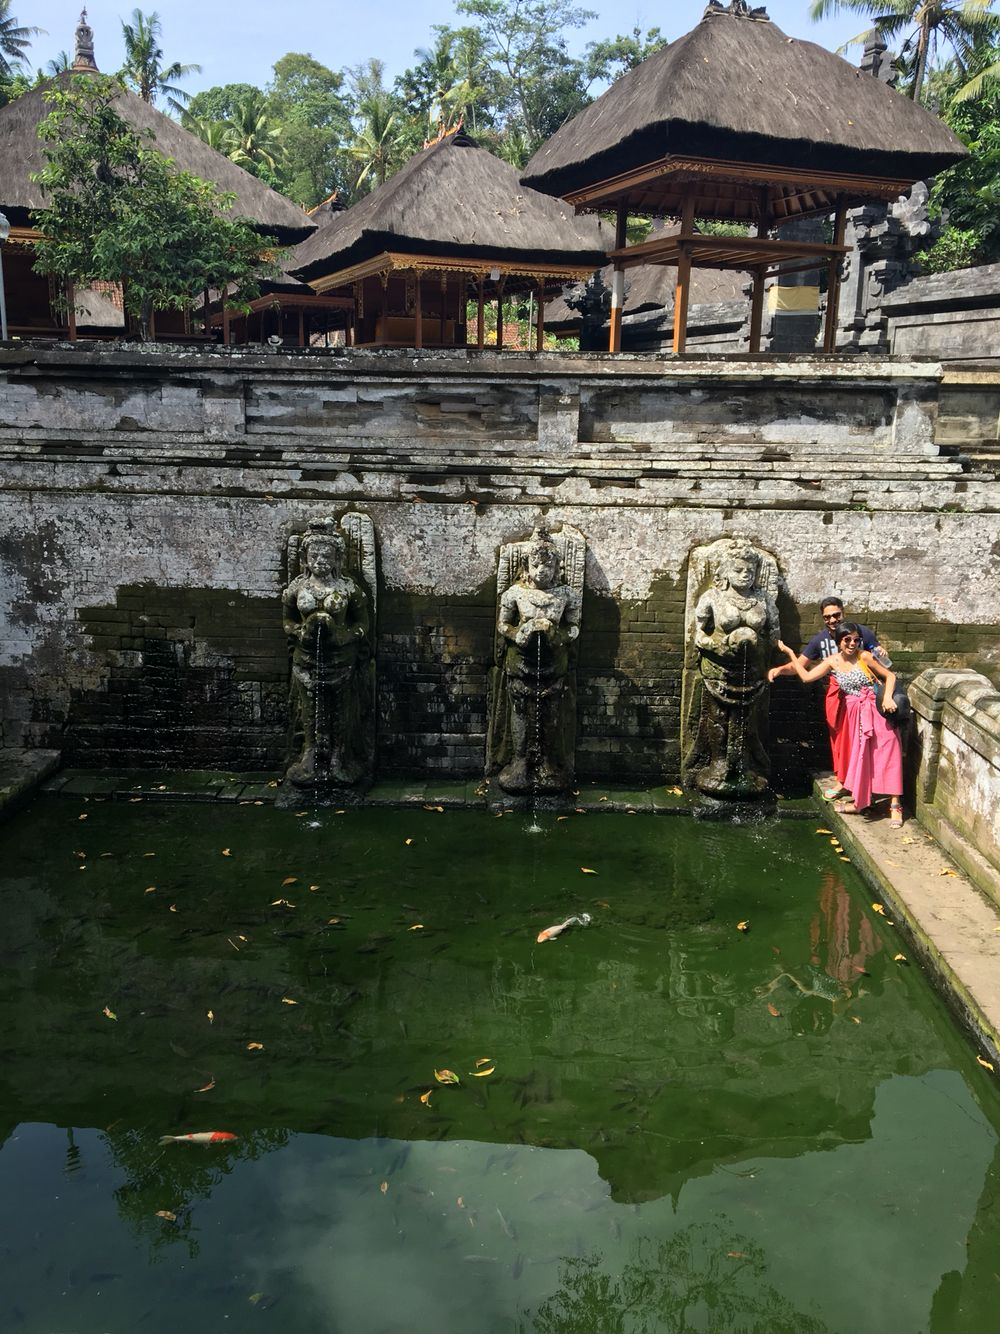 The famous Elephant Temple in Ubud.